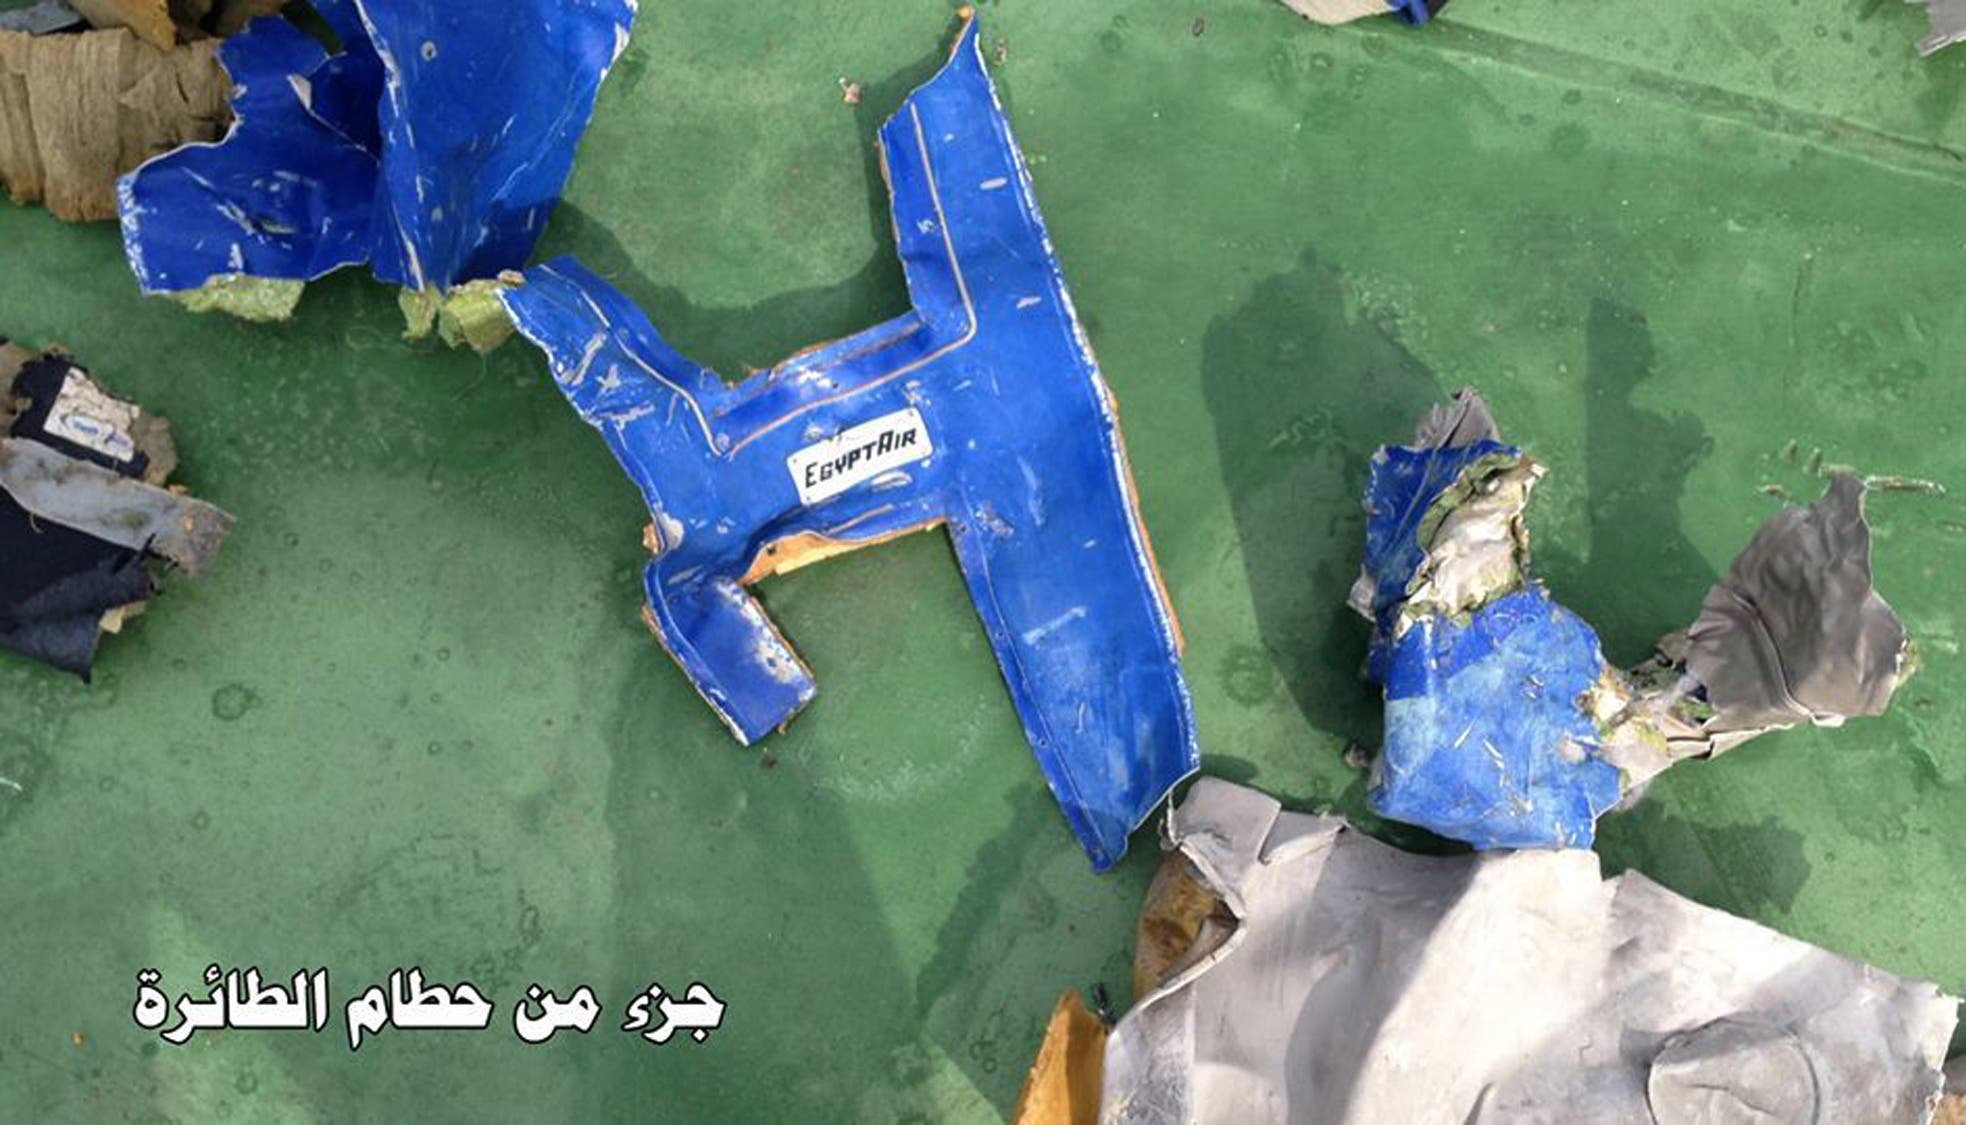 Recovered debris of the EgyptAir jet that crashed in the Mediterranean Sea are seen in this still image taken from video. (Egyptian Armed Forces via AP)